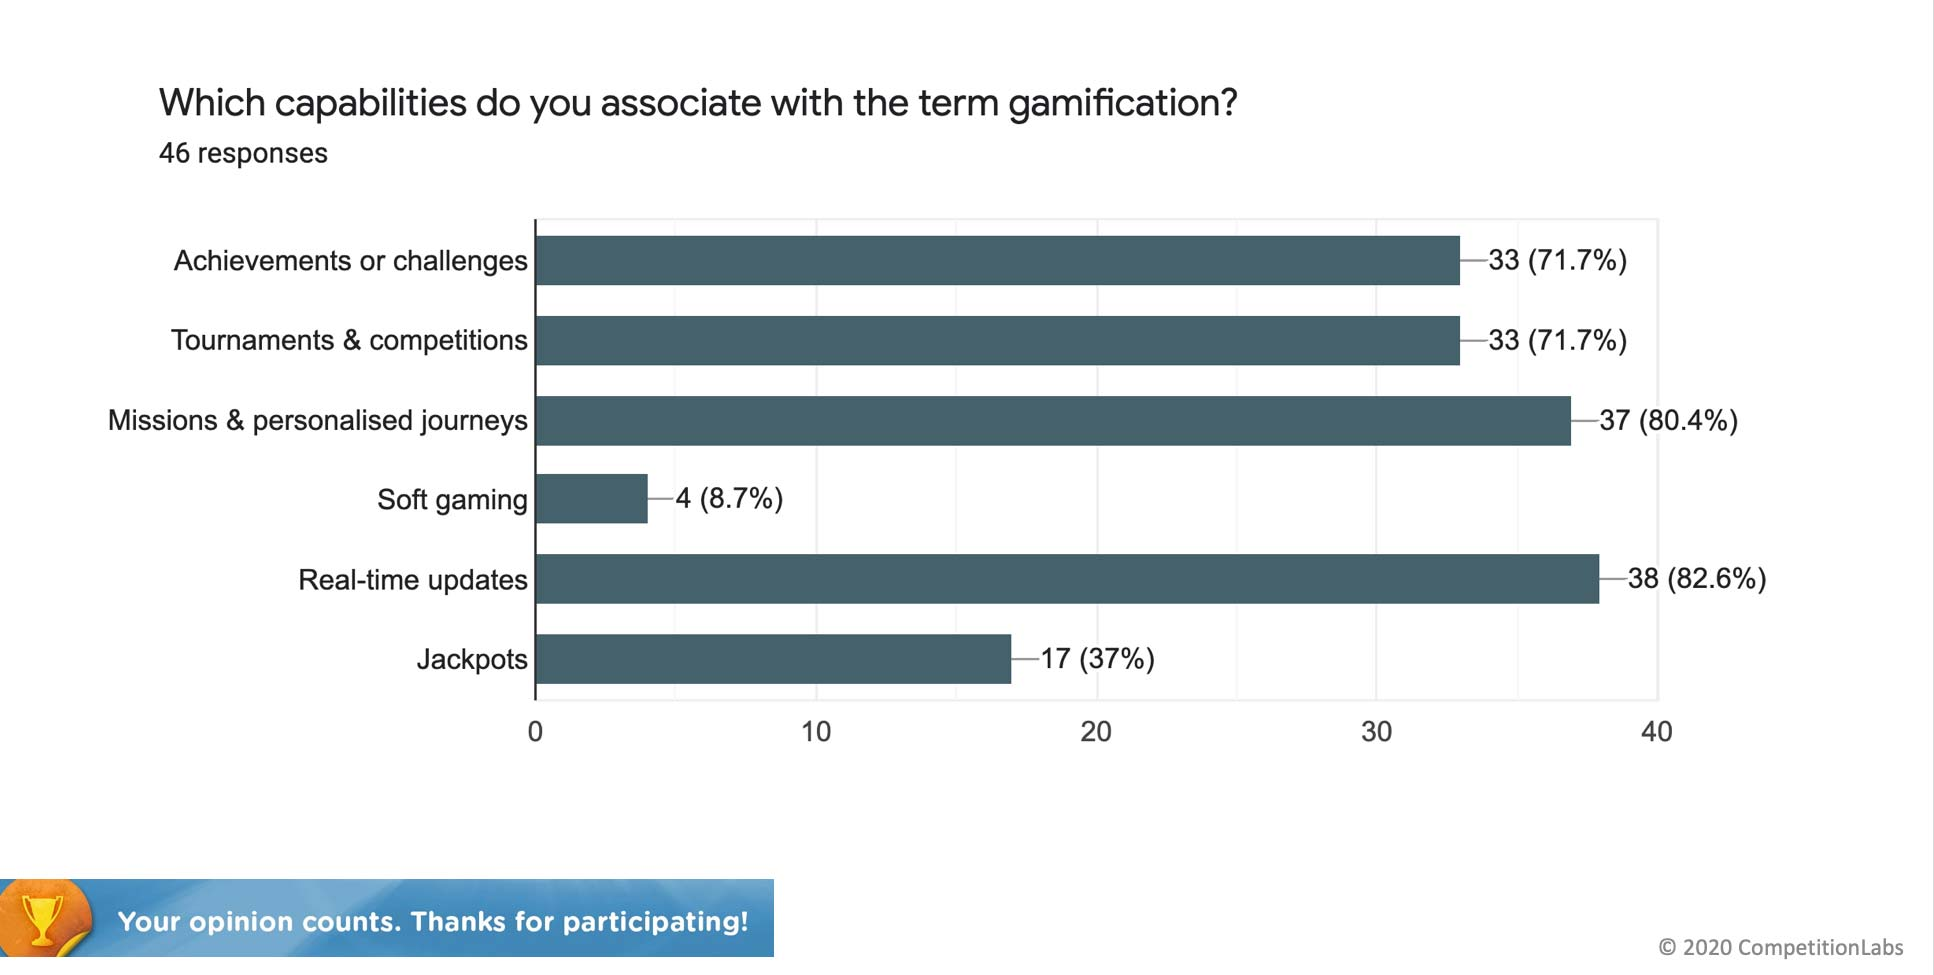 Which capabilities do you associate with the term gamification?